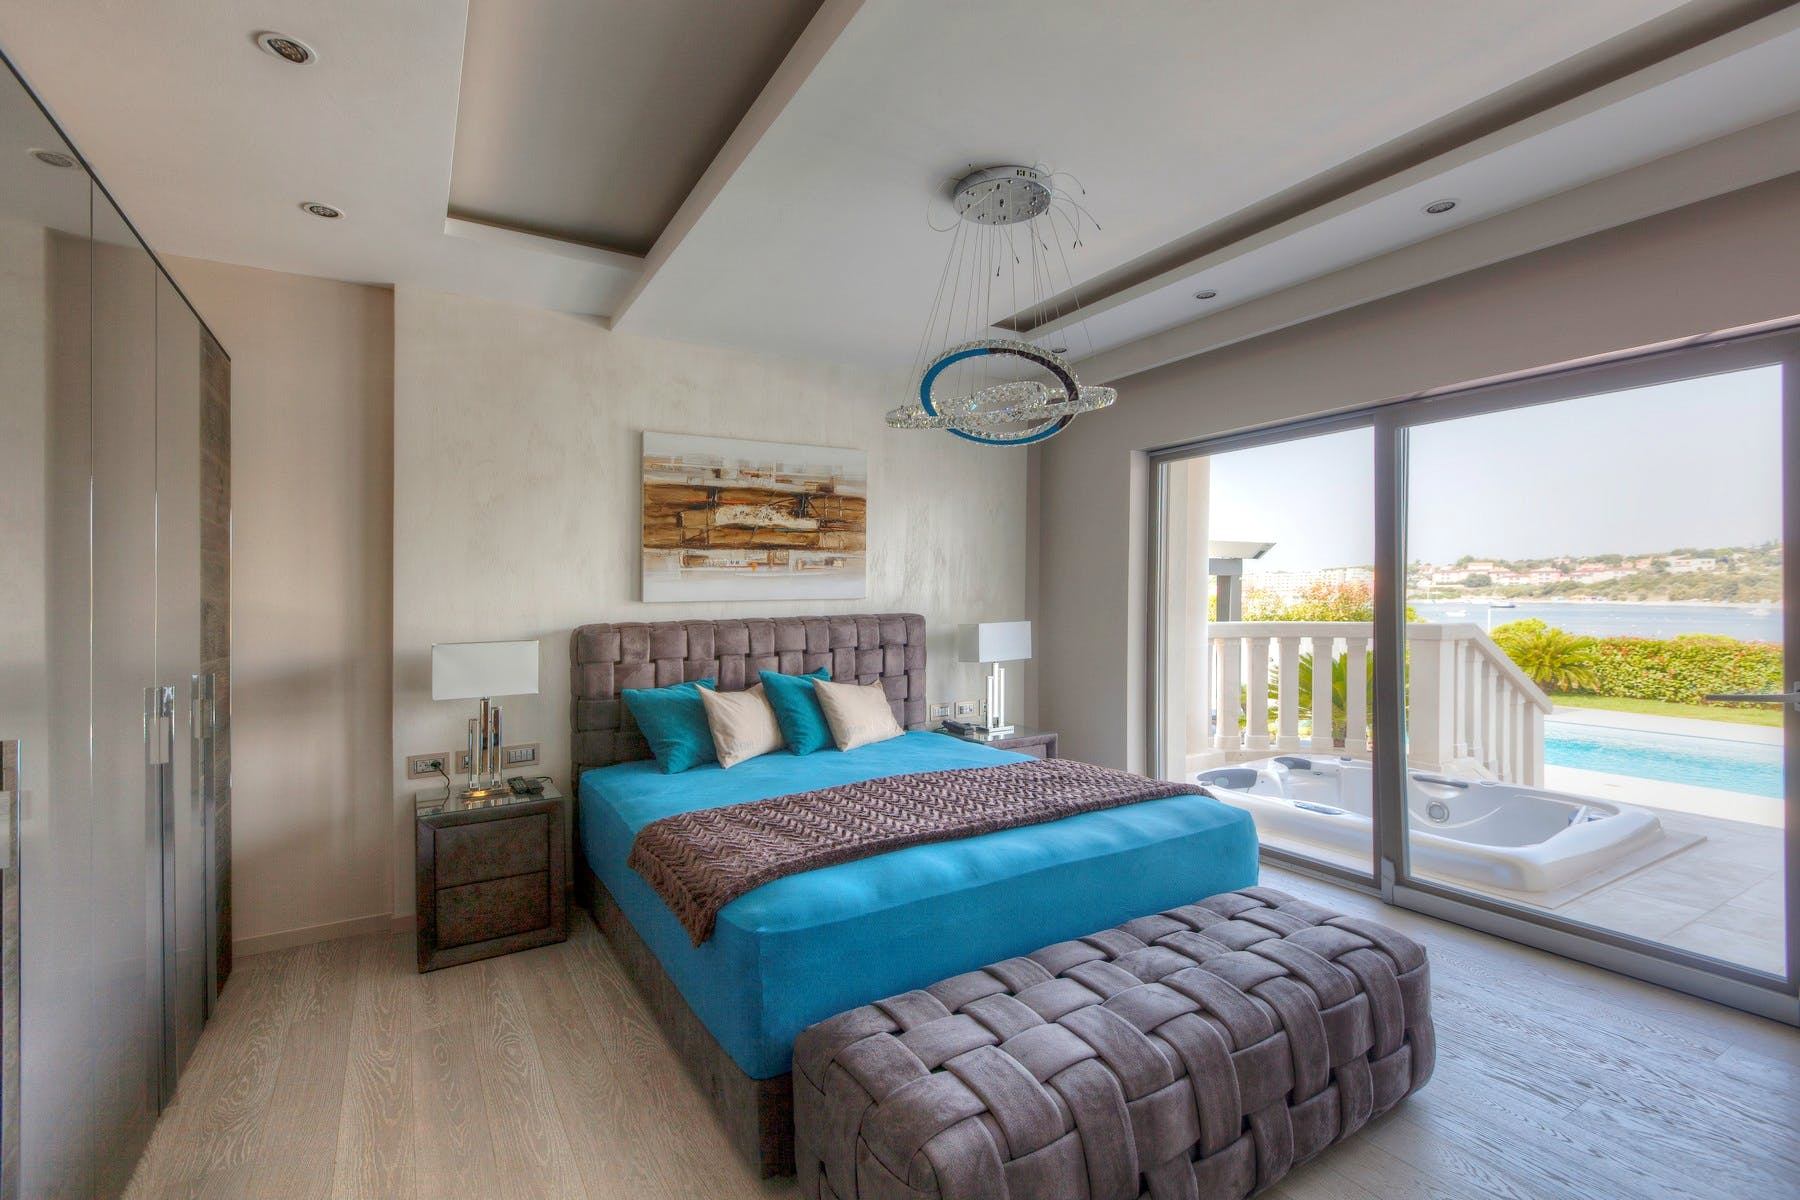 Bedroom with a sea view